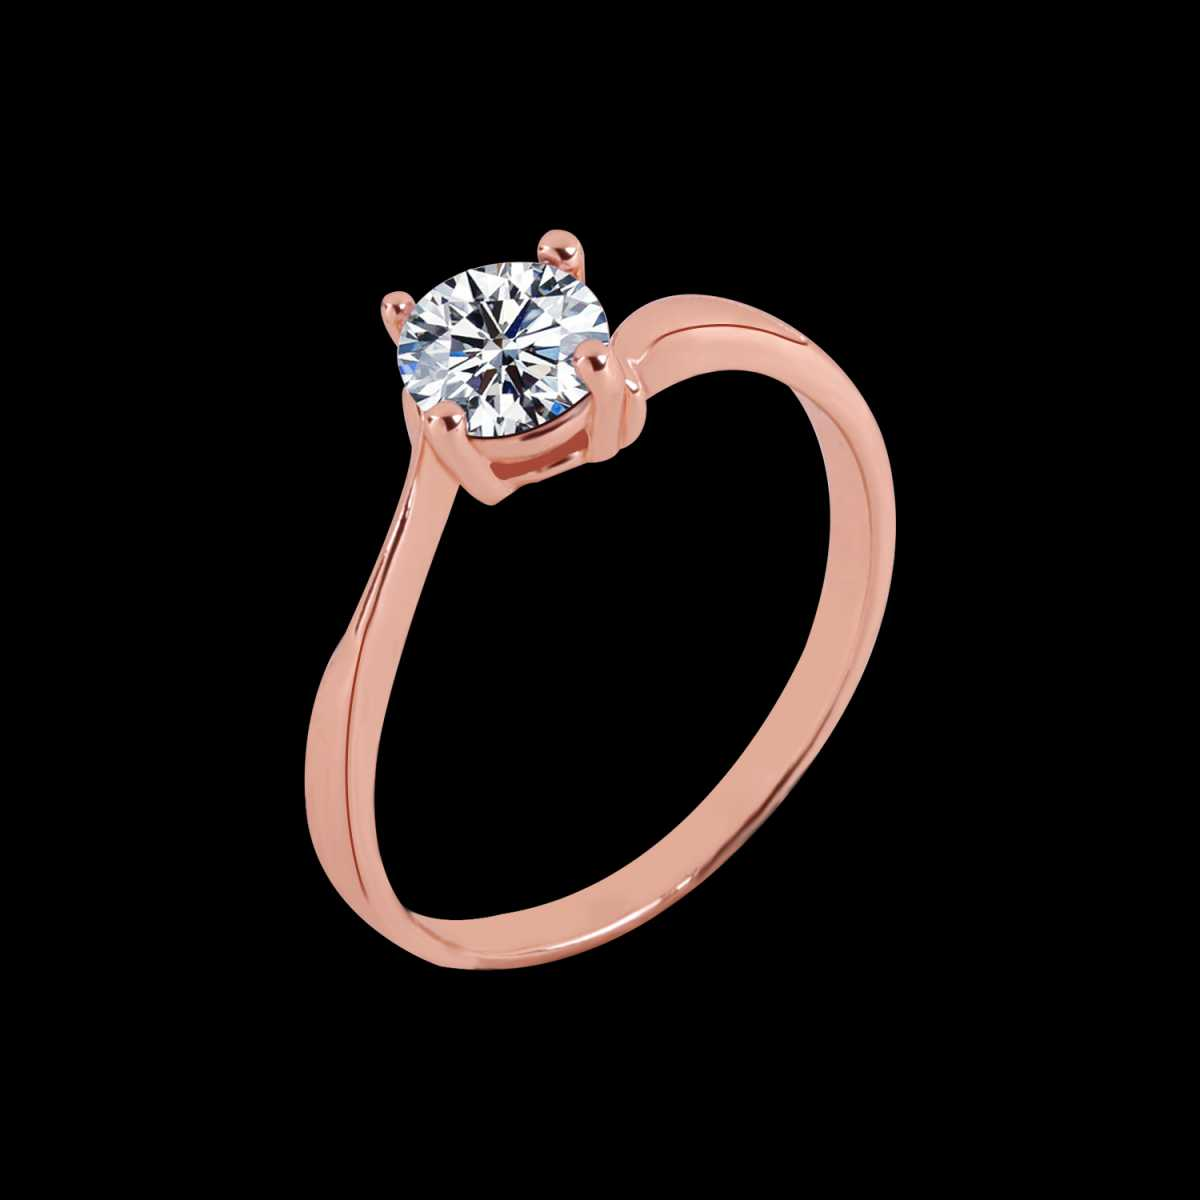 Silver Shine Rose Gold Plated Elegant Classic Crystal Curve Style Solitaire Ring for Girls and women,wedding ring,jewelry,diamonds,fashion jewelry,couple rings.